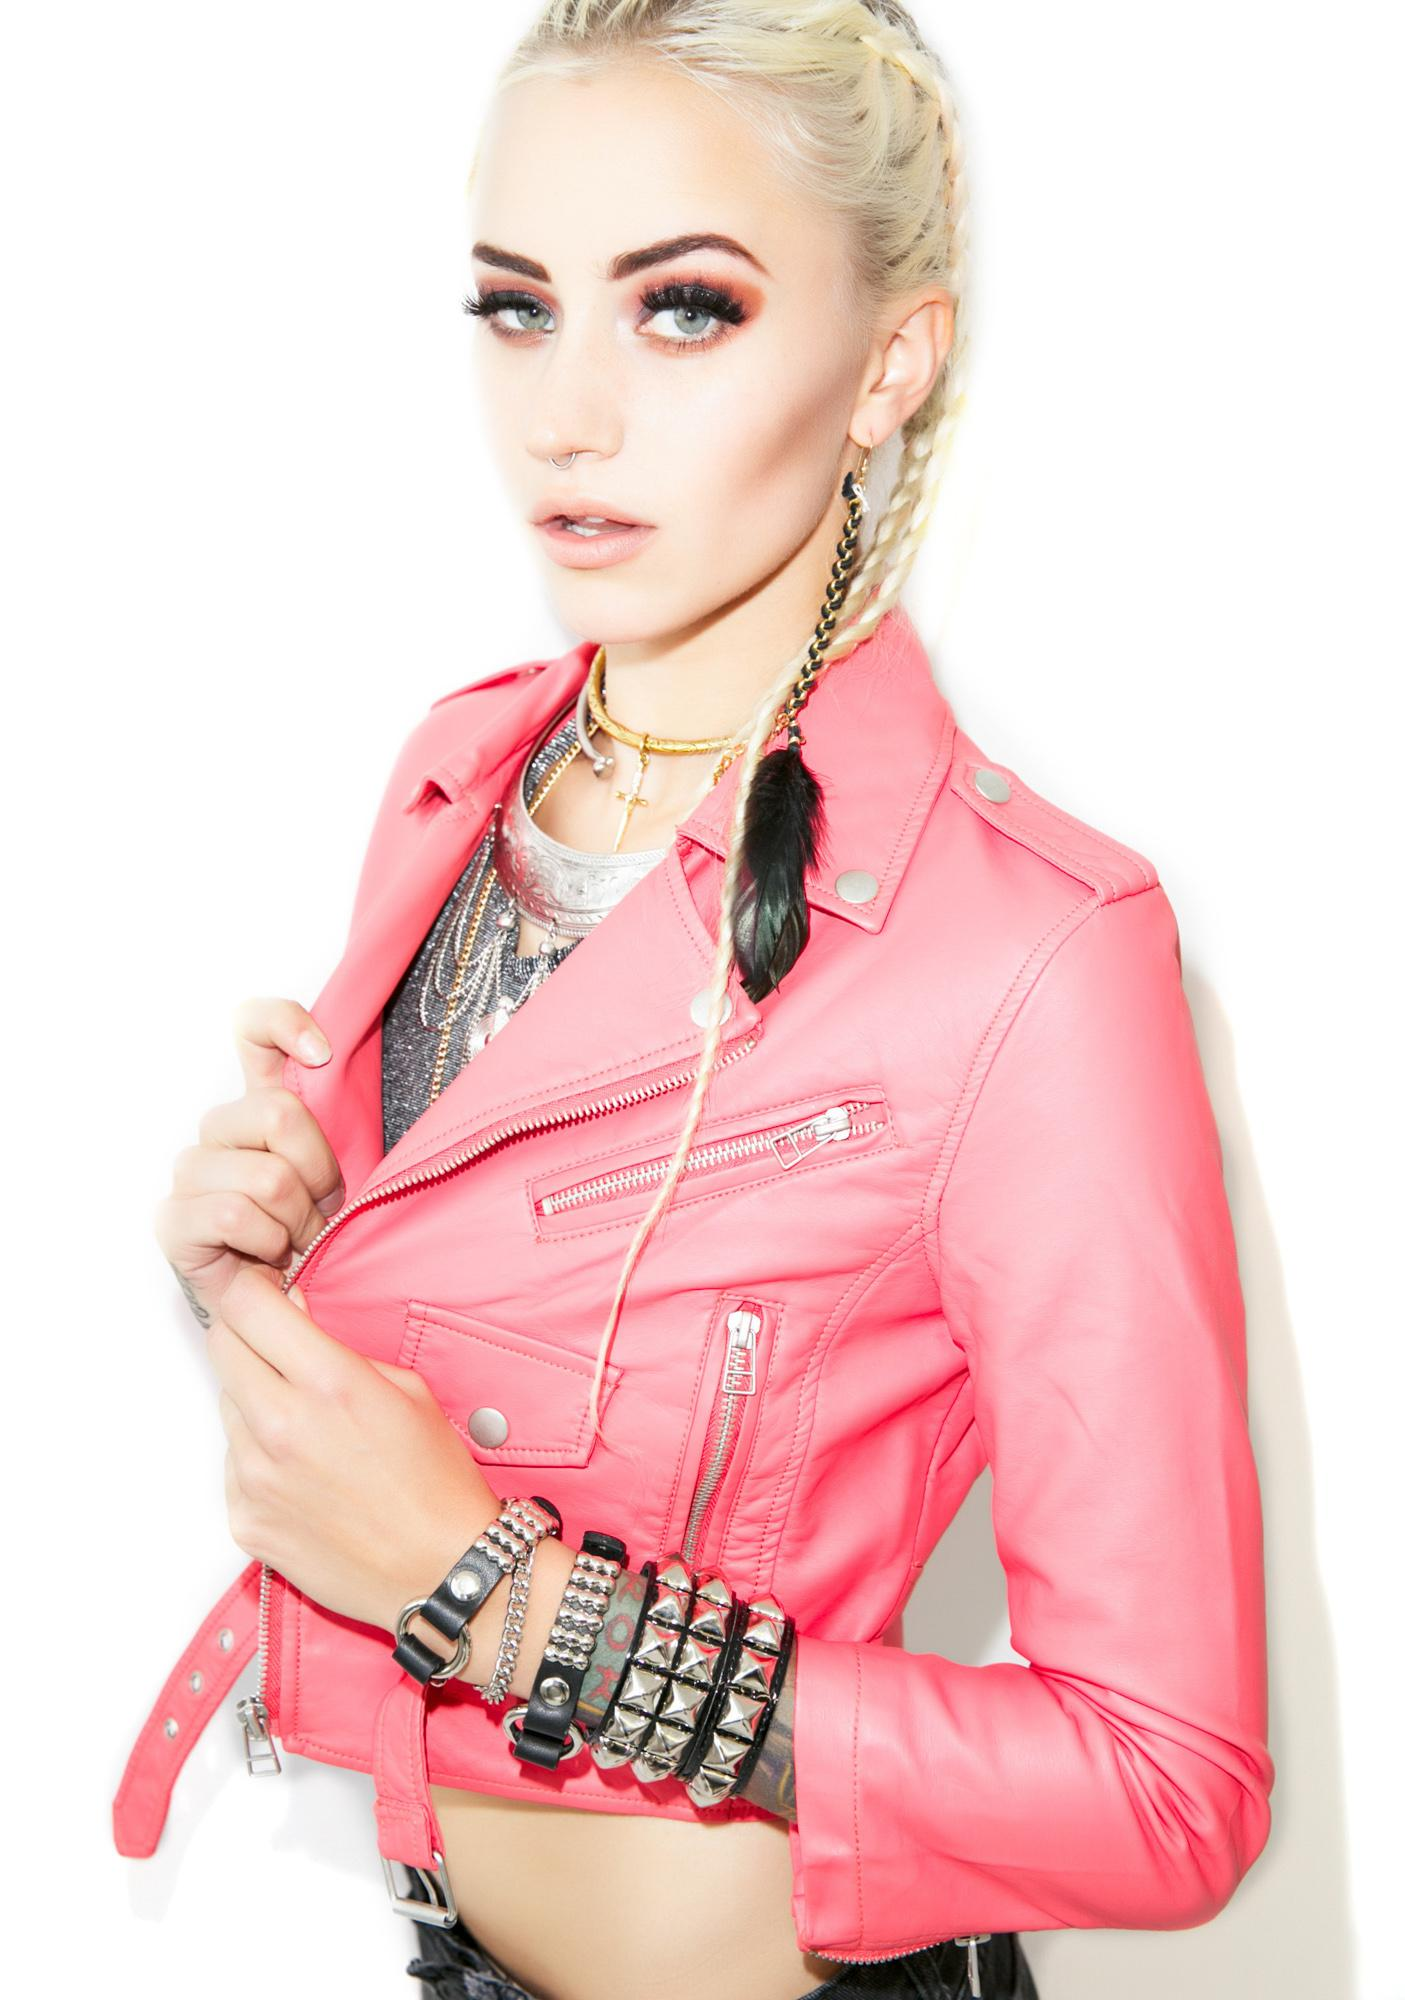 Lip Service Sorbet-Licious Vinyl Cropped Jacket | Dolls Kill